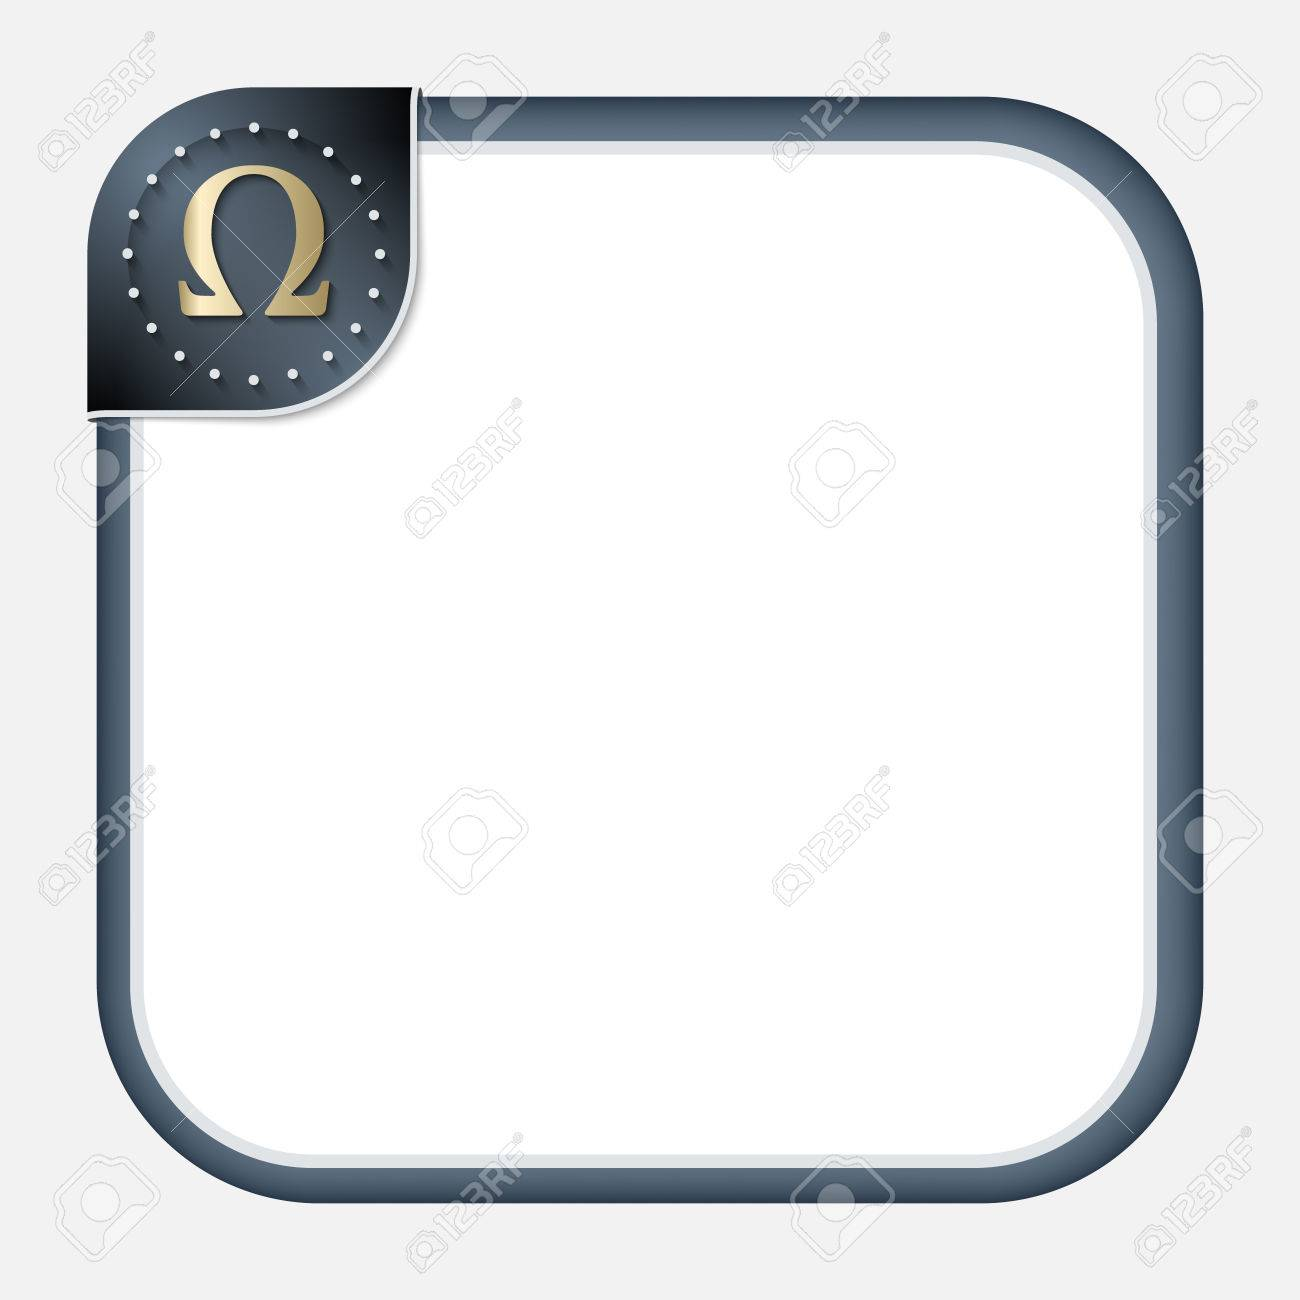 Abstract Frame For Your Text With Dark Corner And Omega Symbol